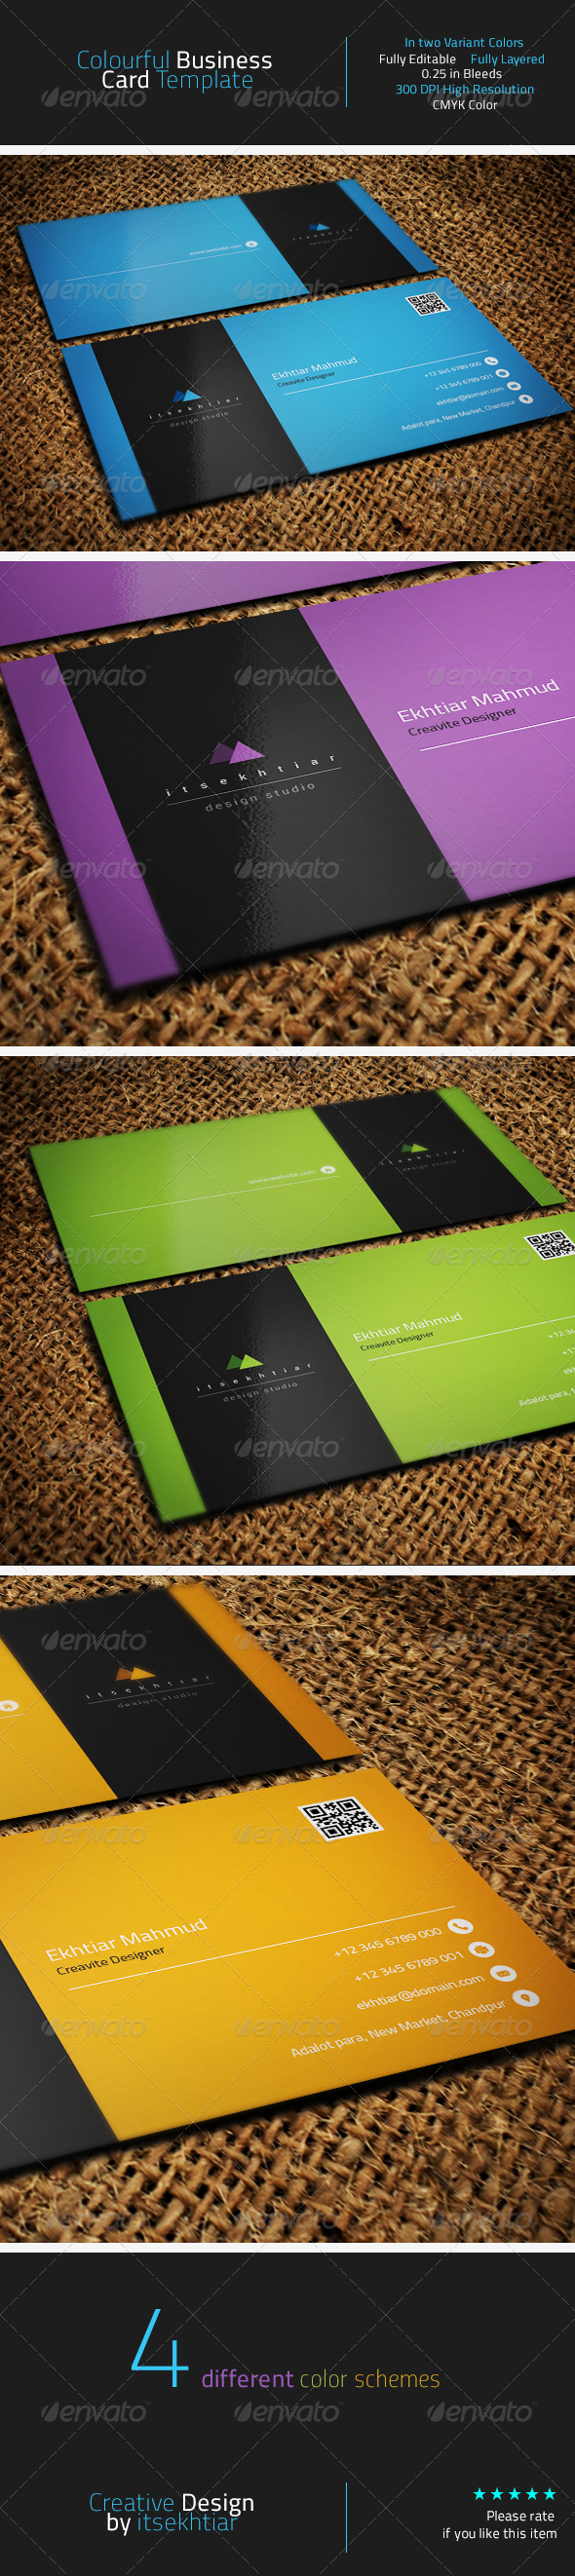 GraphicRiver Colourful Business Card Template 8247322